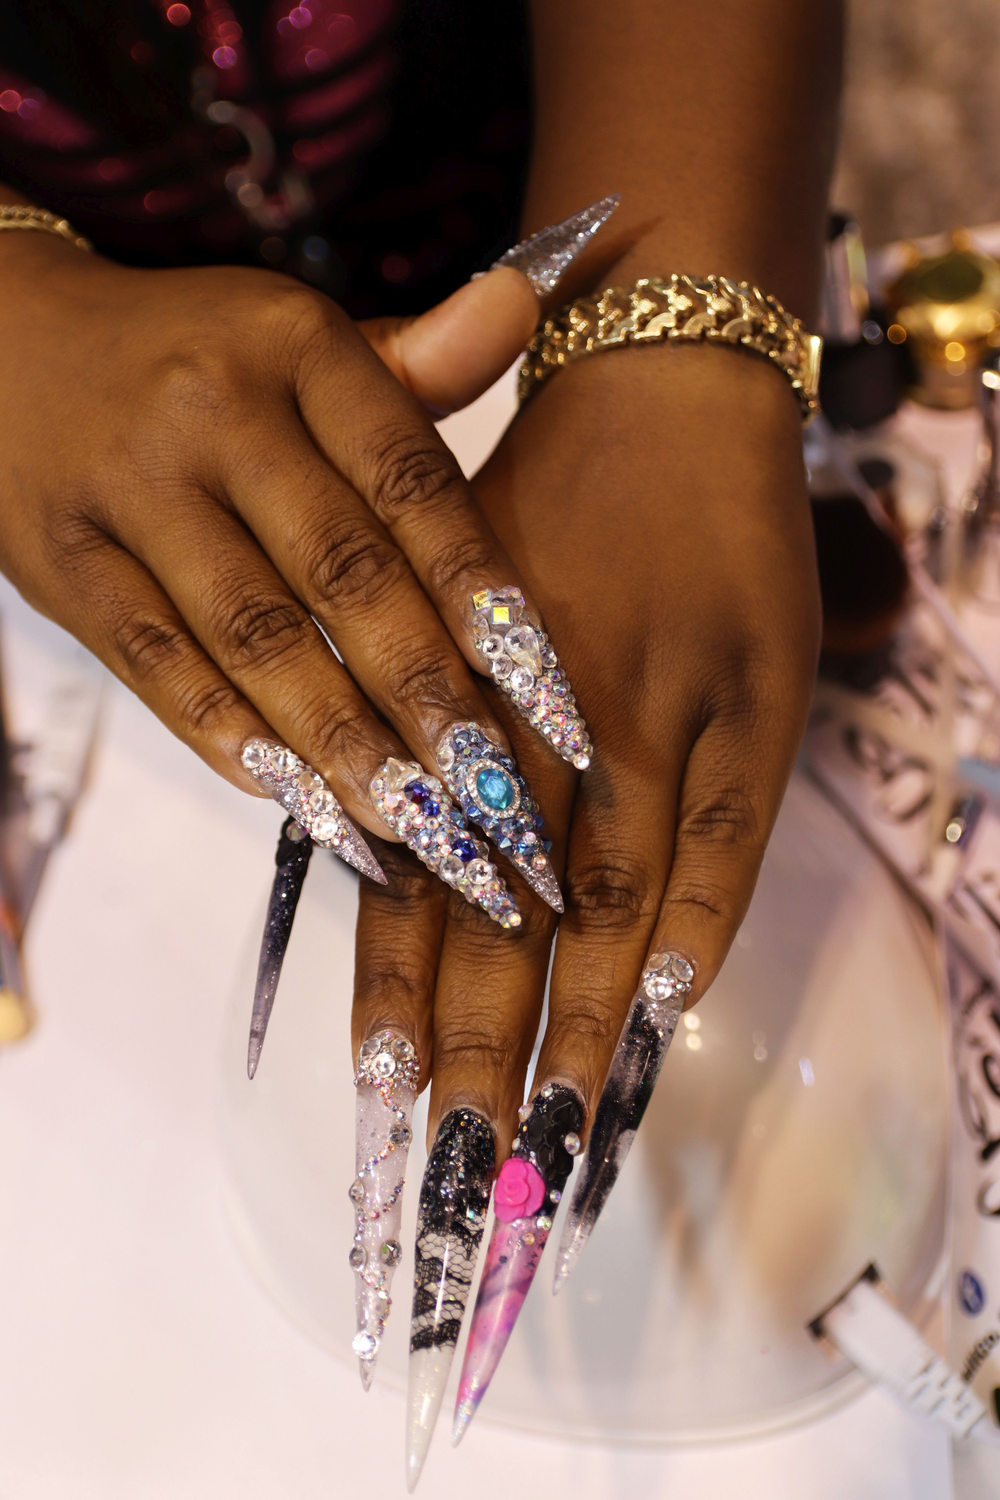 <p>Gelli Co. educator had blinged out nails.</p>